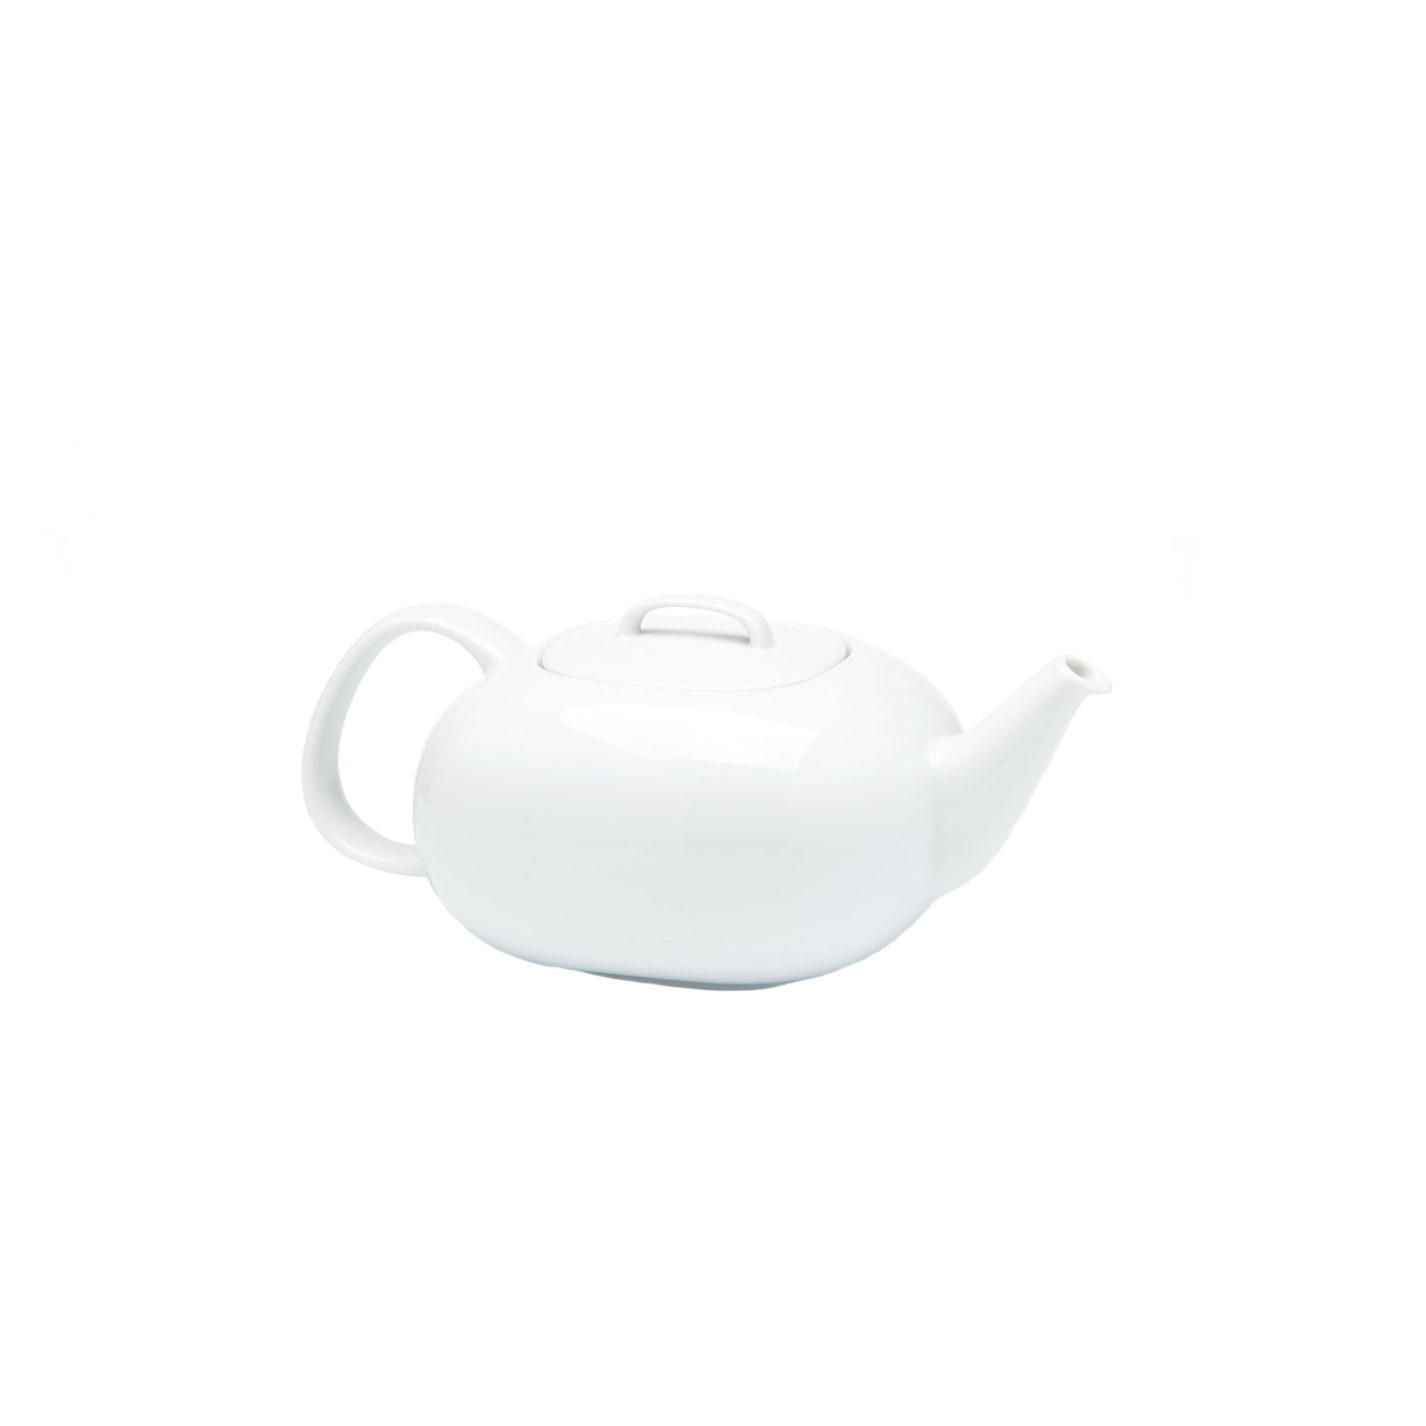 White porcelain teapot. Its form is a smooth rounded rectangle with handle and spout with a simple, low handle set on the lid.